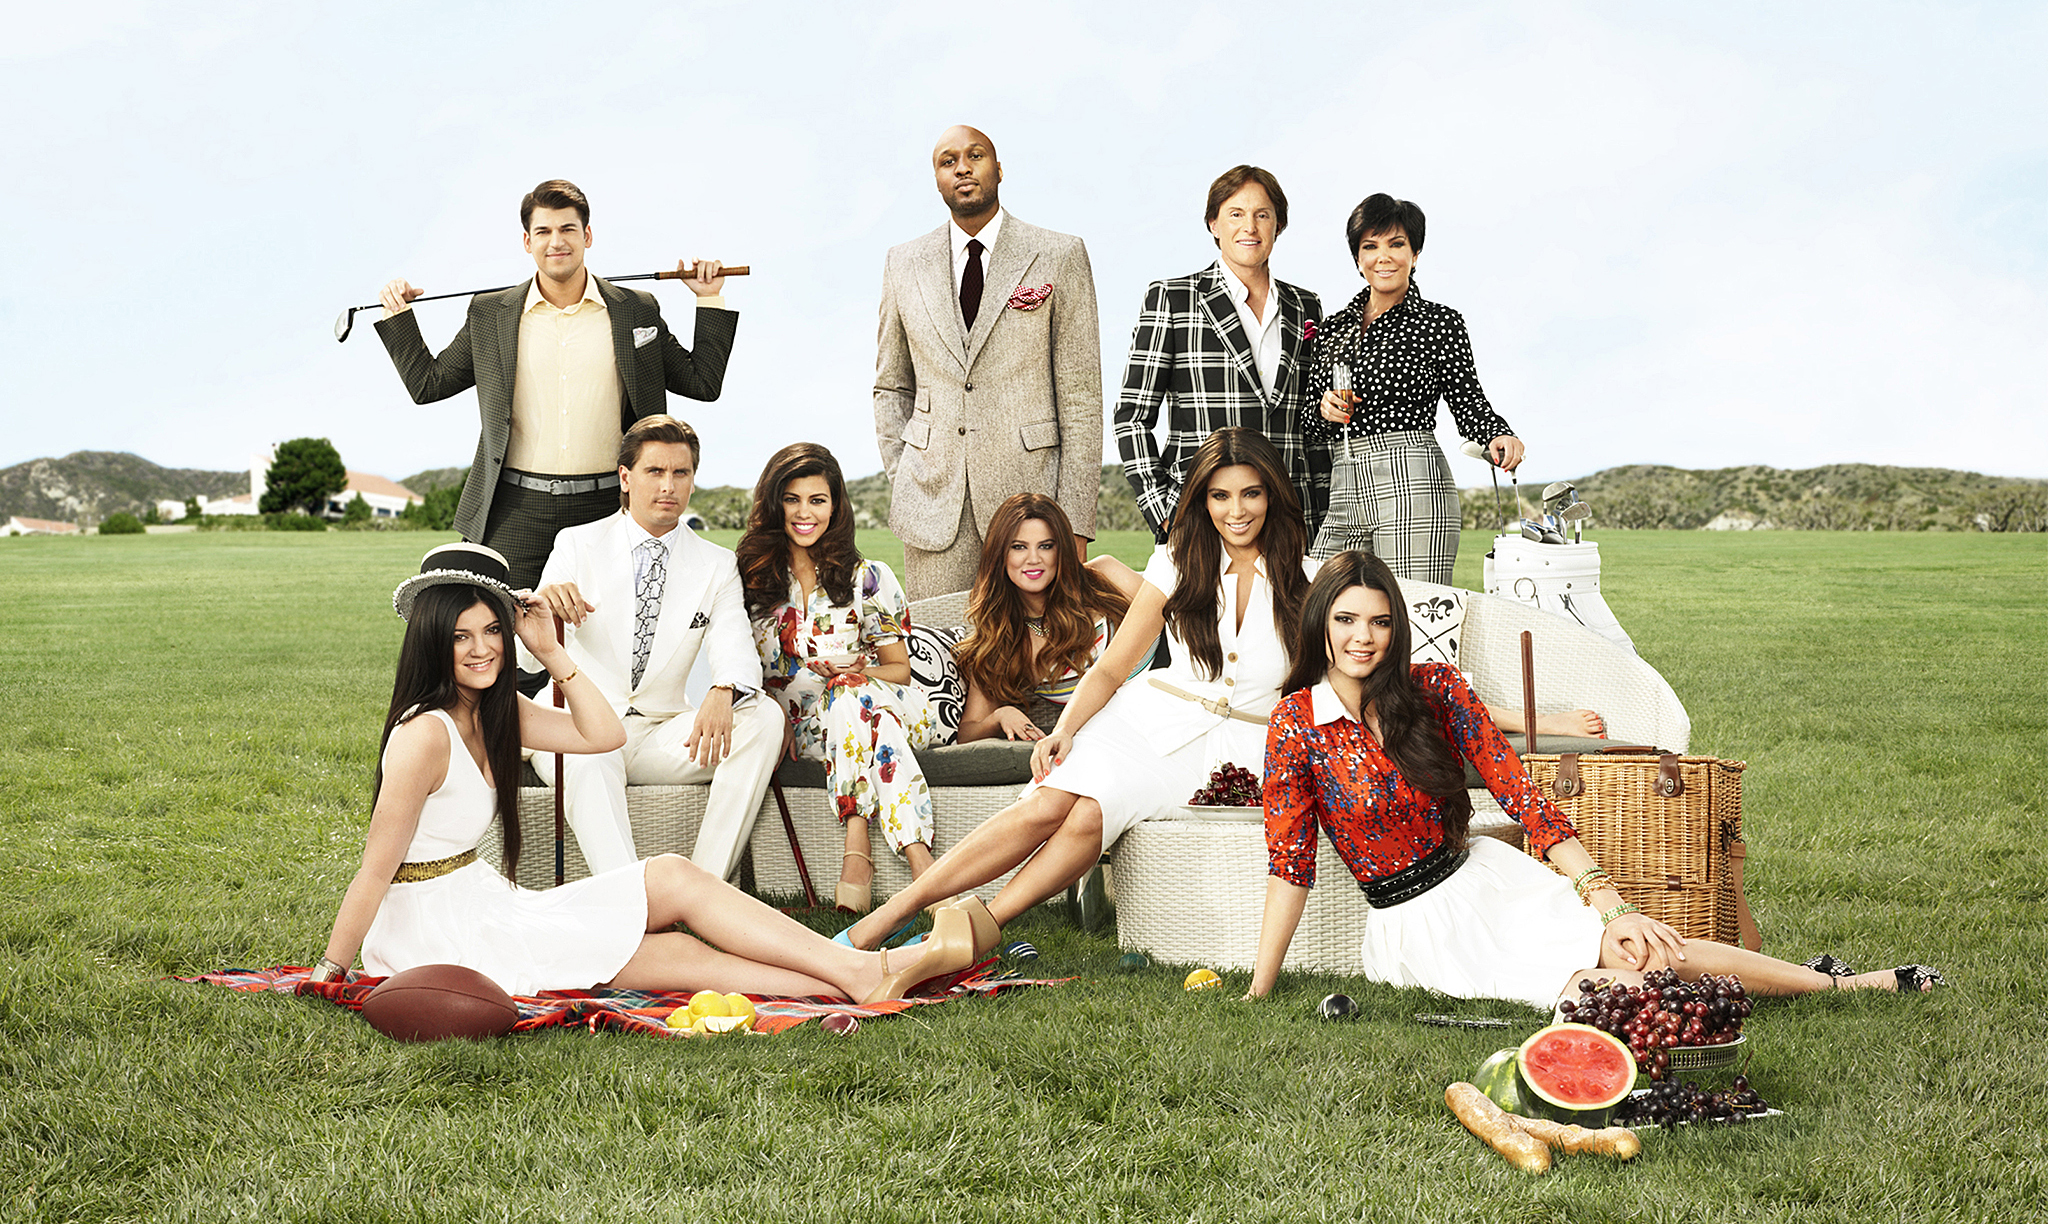 'Keeping Up With the Kardashians' Promo Image (E! Entertainment)